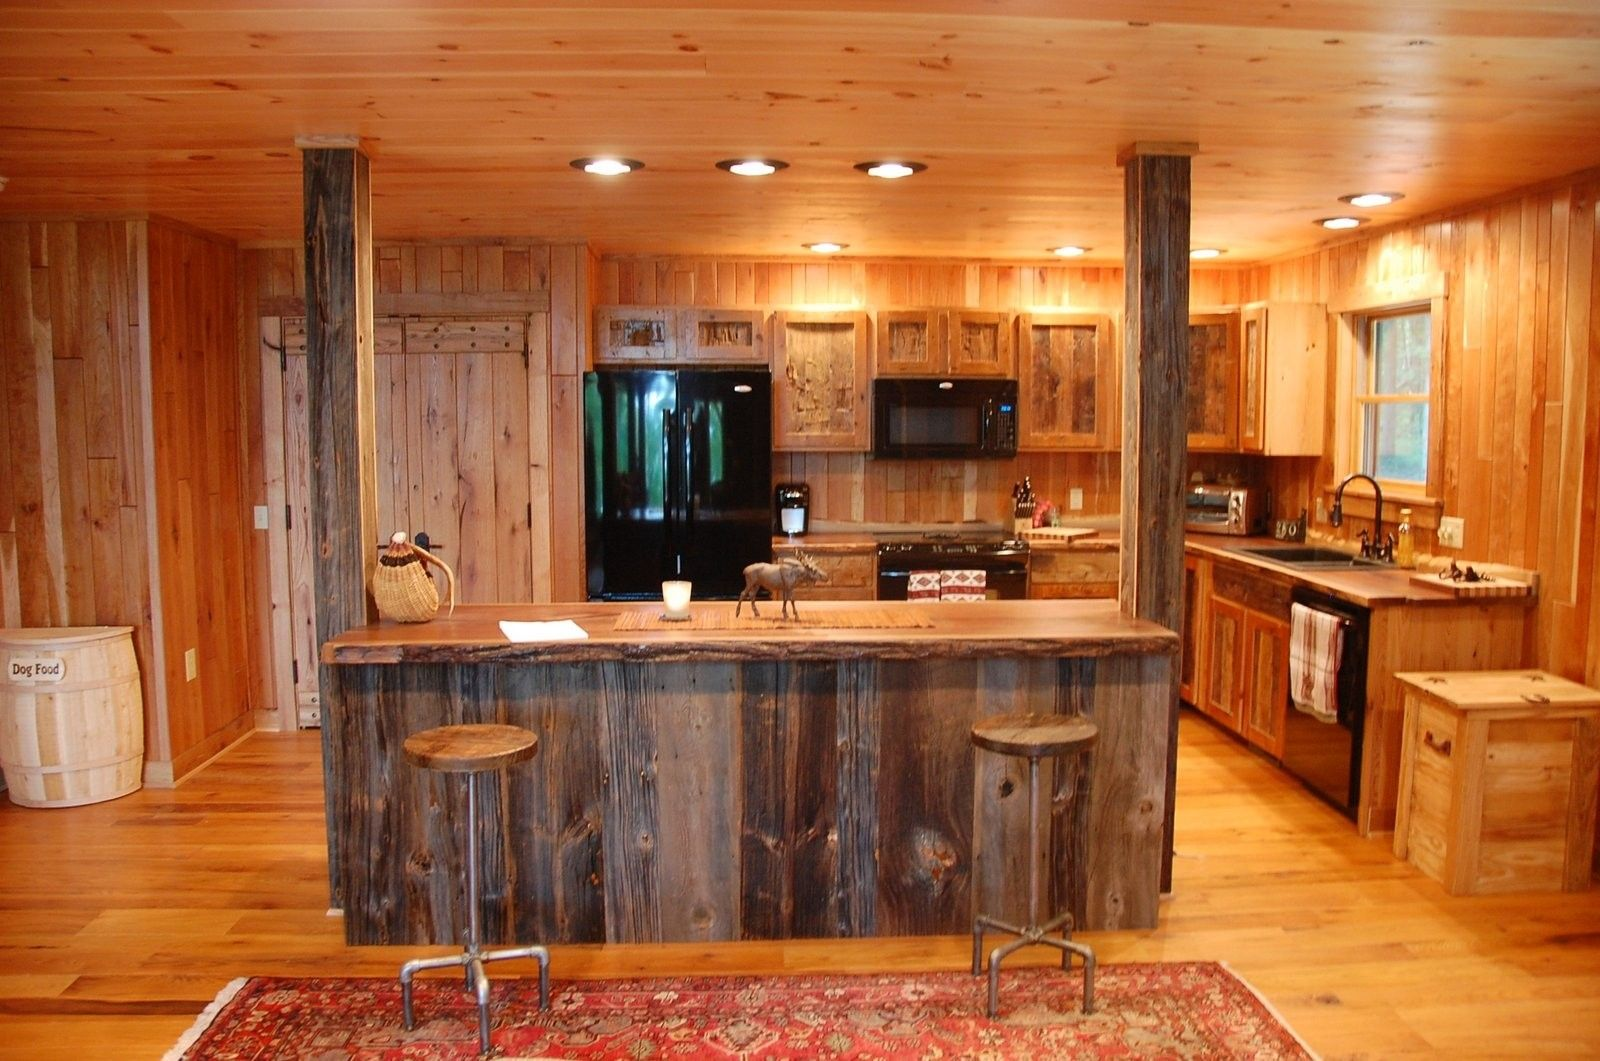 Custom made reclaimed wood rustic kitchen cabinets by corey morgan wood works - Custom made kitchen cabinets ...